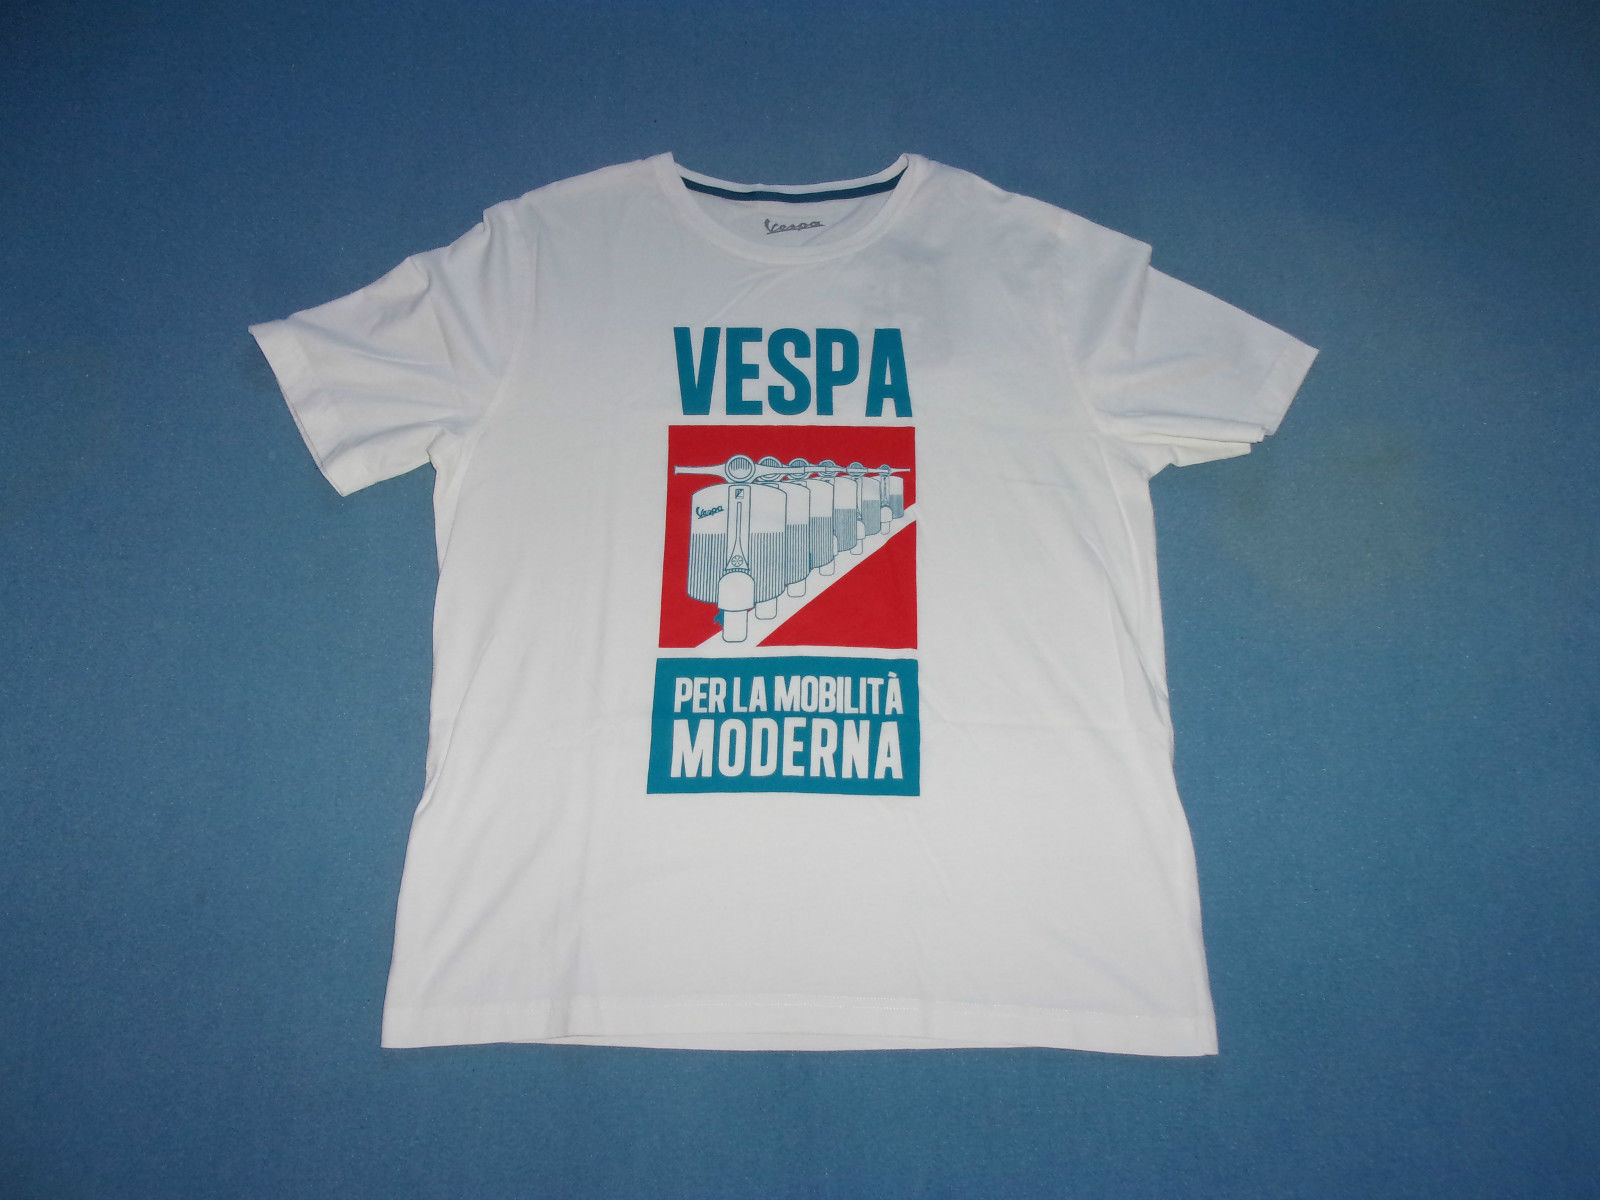 T-Shirt VESPA Homme Blanc One Shot Man Taille T Shirt Gift More Size and Colors Top Tee Colour Funny Printed Funny